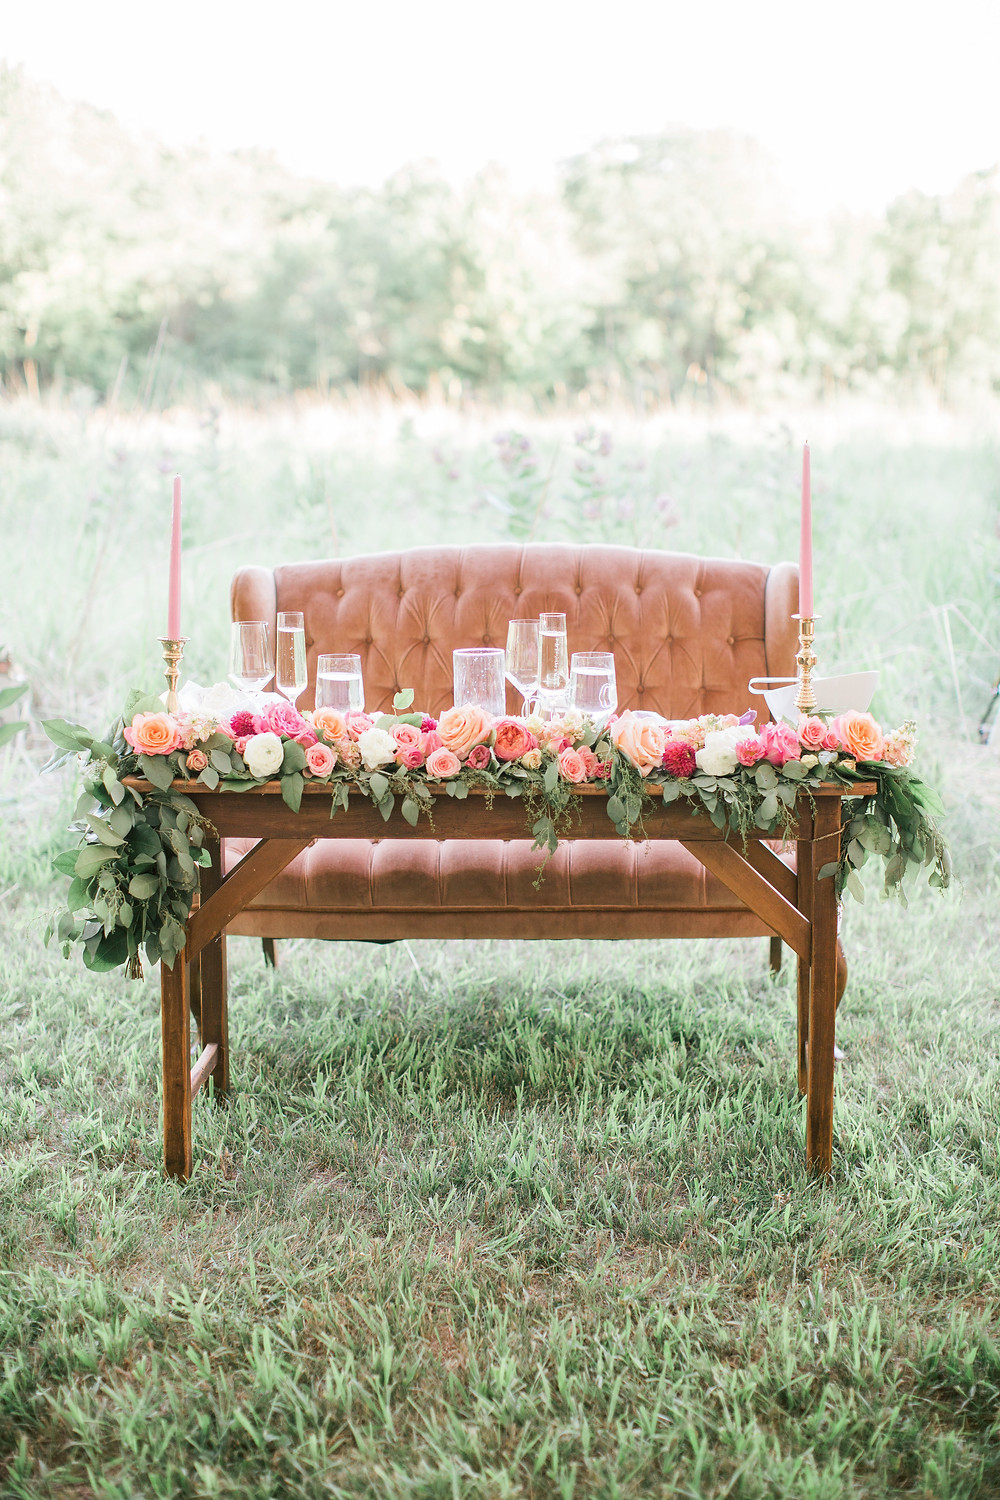 wedding sweetheart table with peach vintage couch and pink flower garland by studio bloom iowa florist